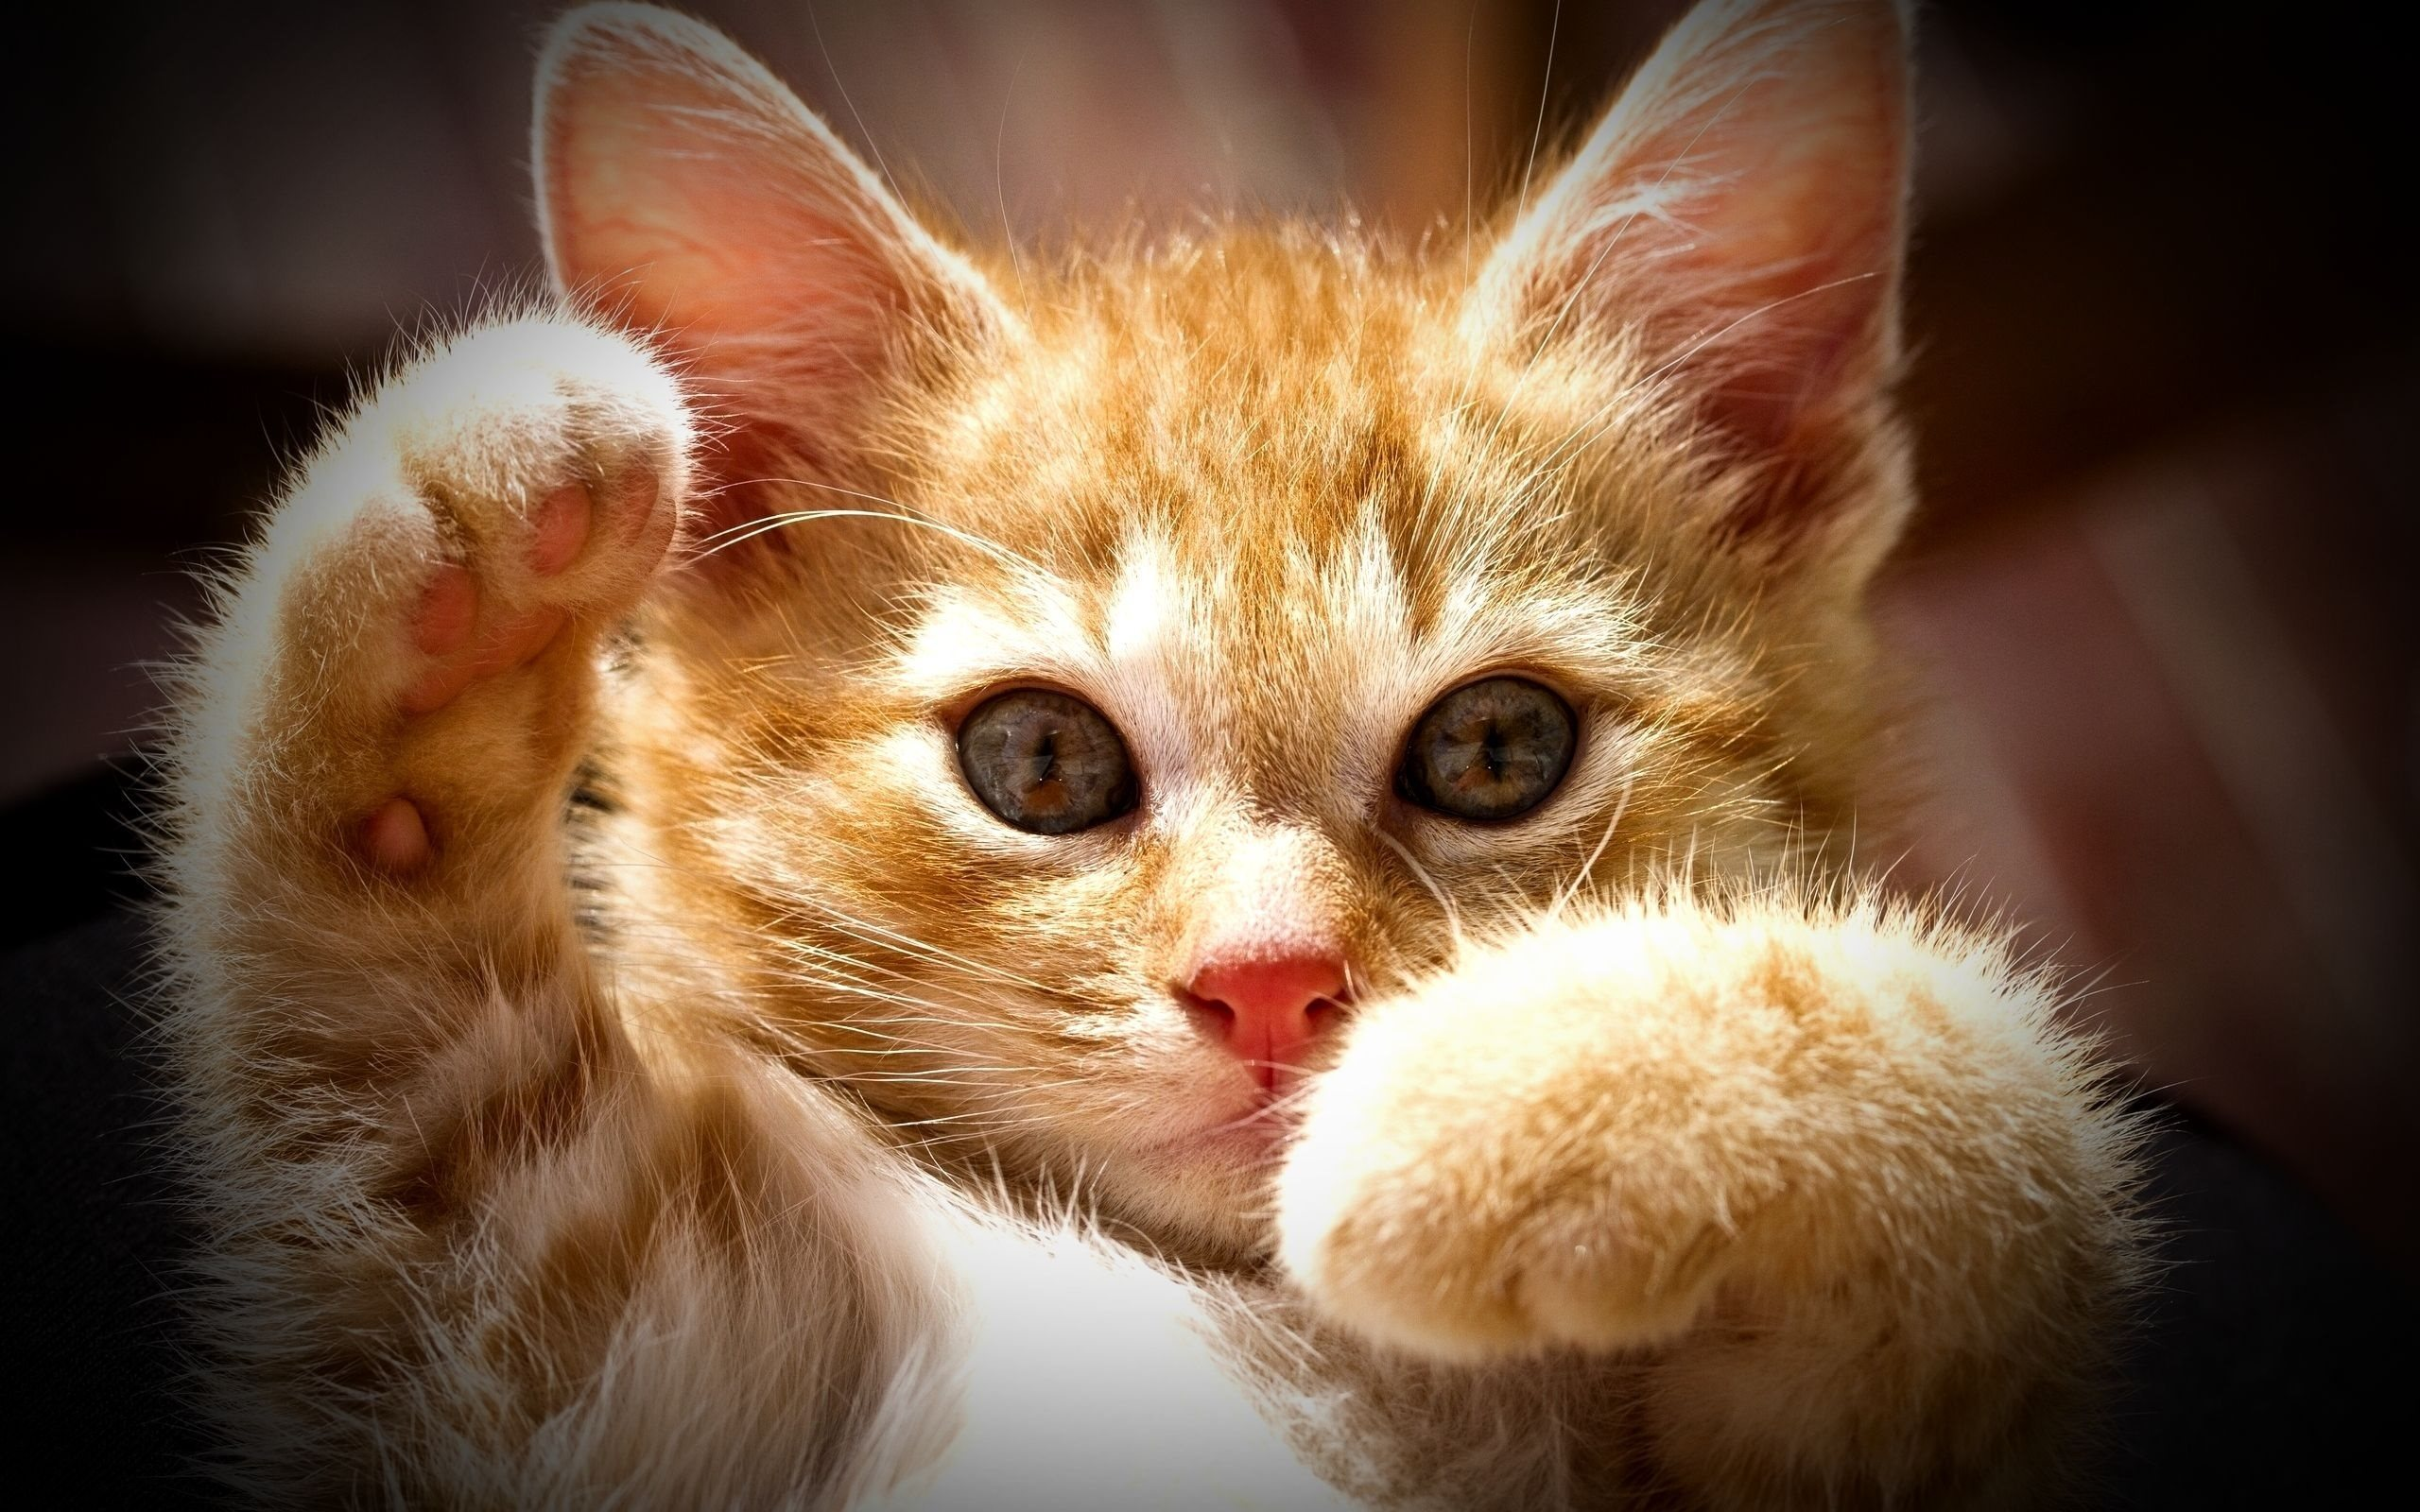 kittens, red-headed cat, cute animals, cats